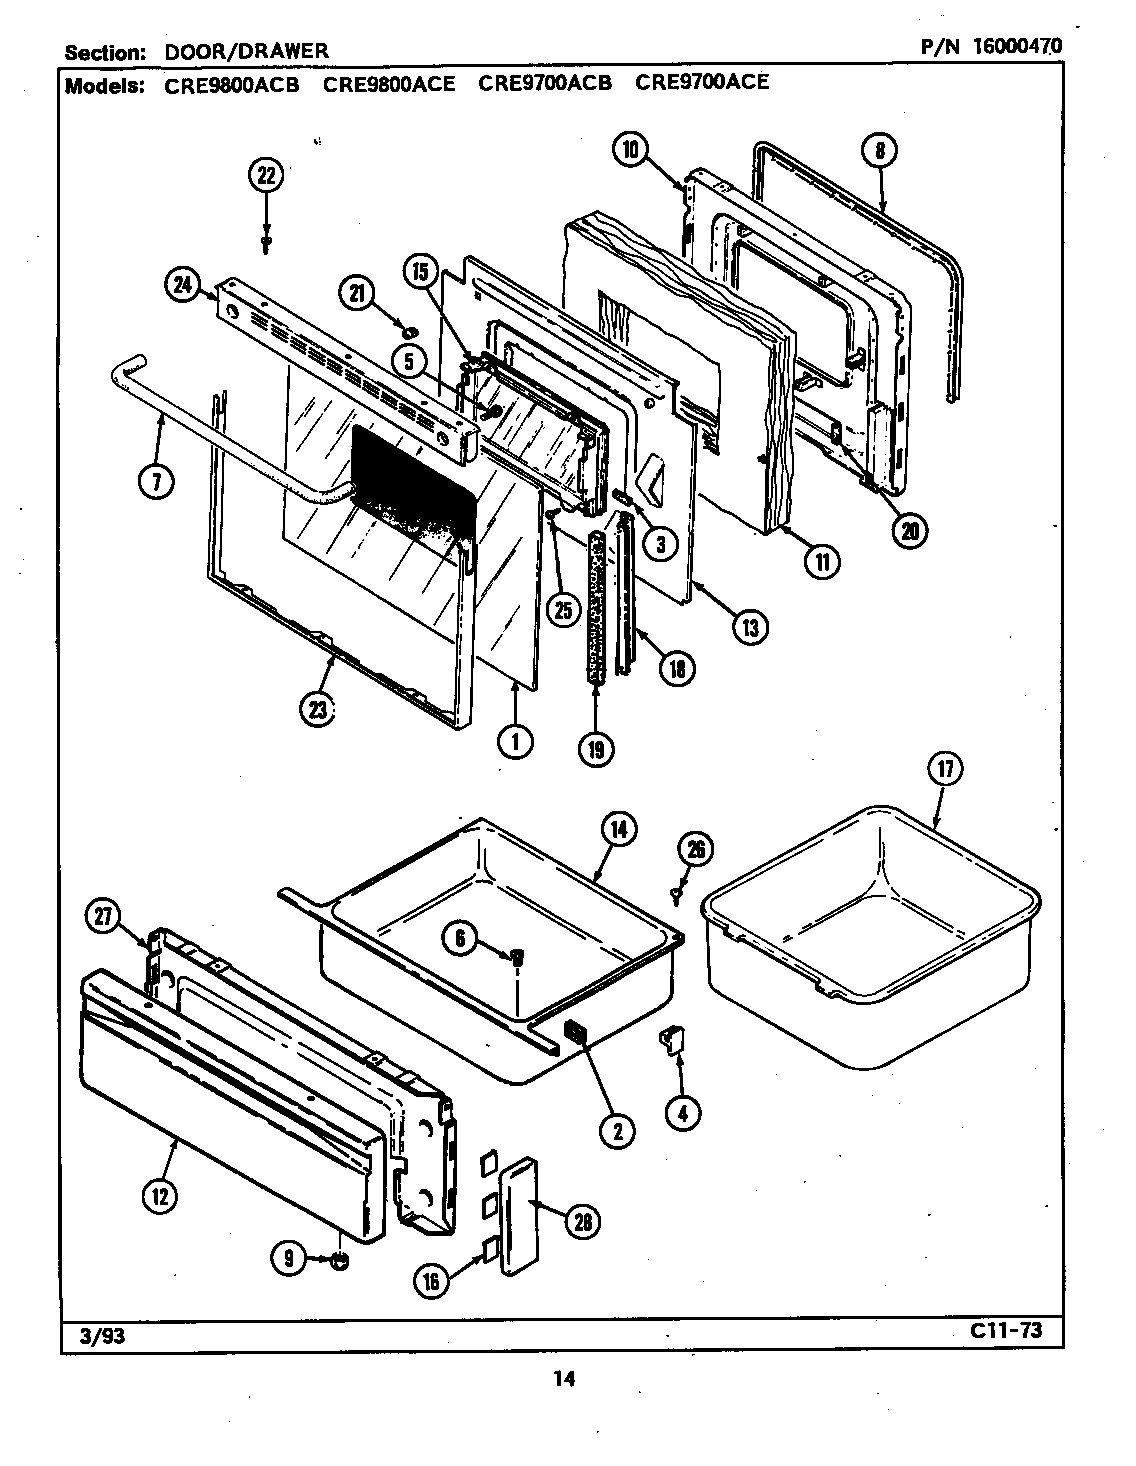 hight resolution of cre9800ace range door drawer parts diagram